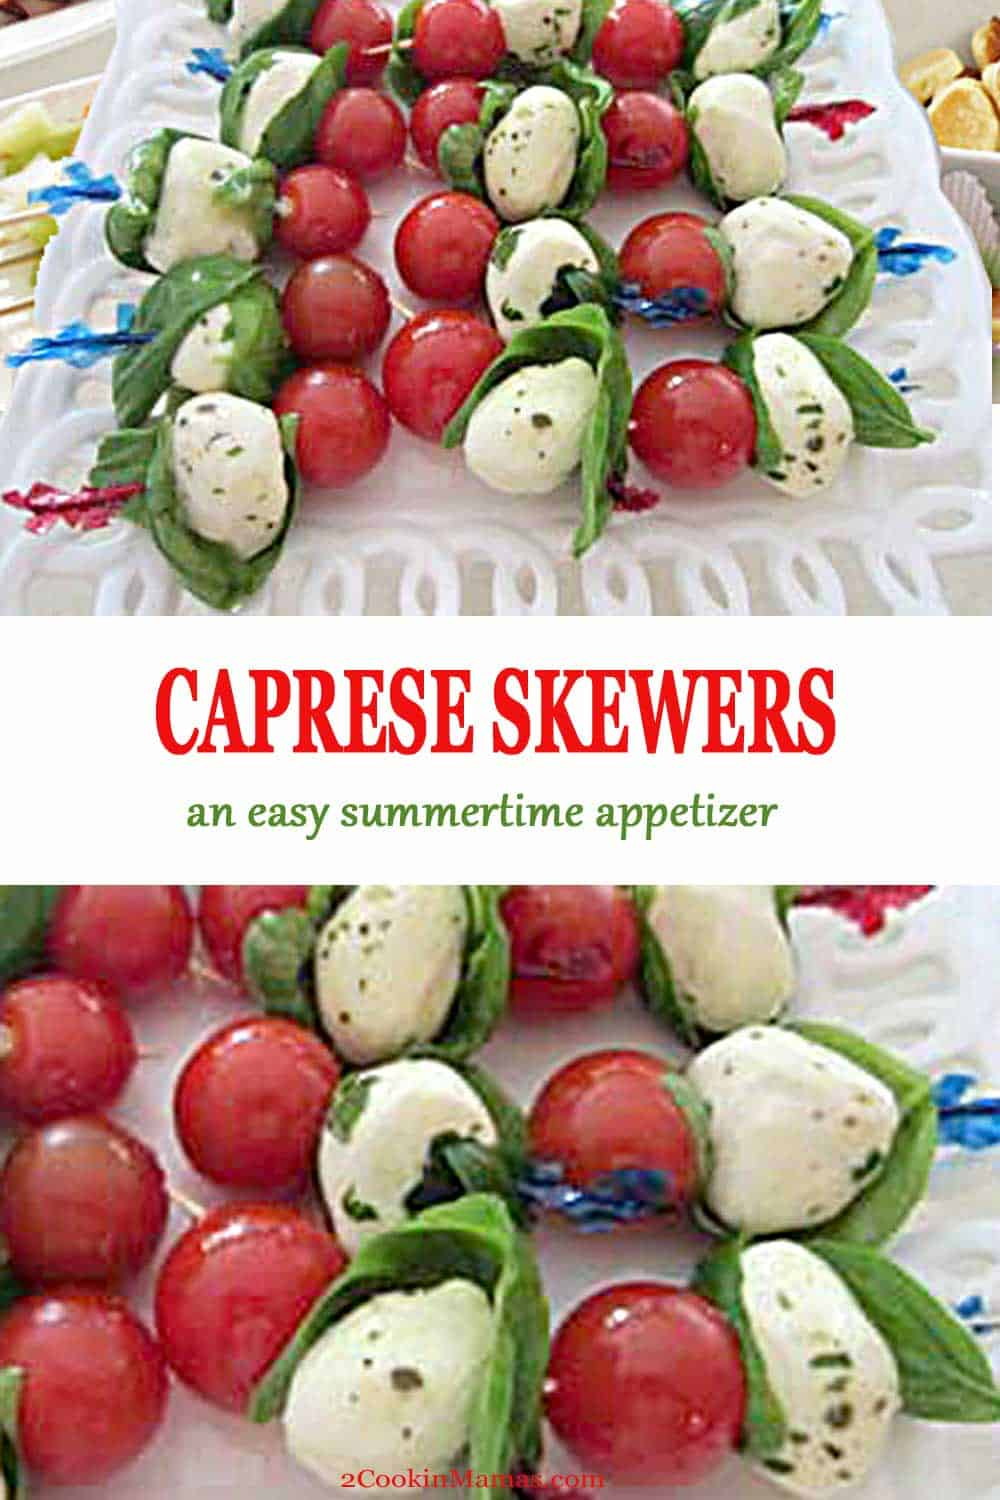 Caprese Skewers | 2 Cookin Mamas Caprese Skewers are an easy way to serve Caprese Salad as an appetizer. Skewer cherry tomatoes, small mozzarella balls & basil on toothpicks then drizzle with balsamic & olive oil. Great for summer parties, barbecues and game time. #appetizers #easy #capresesalad #salad #tomatoes #mozzarella #basil #recipe #summer #gametime